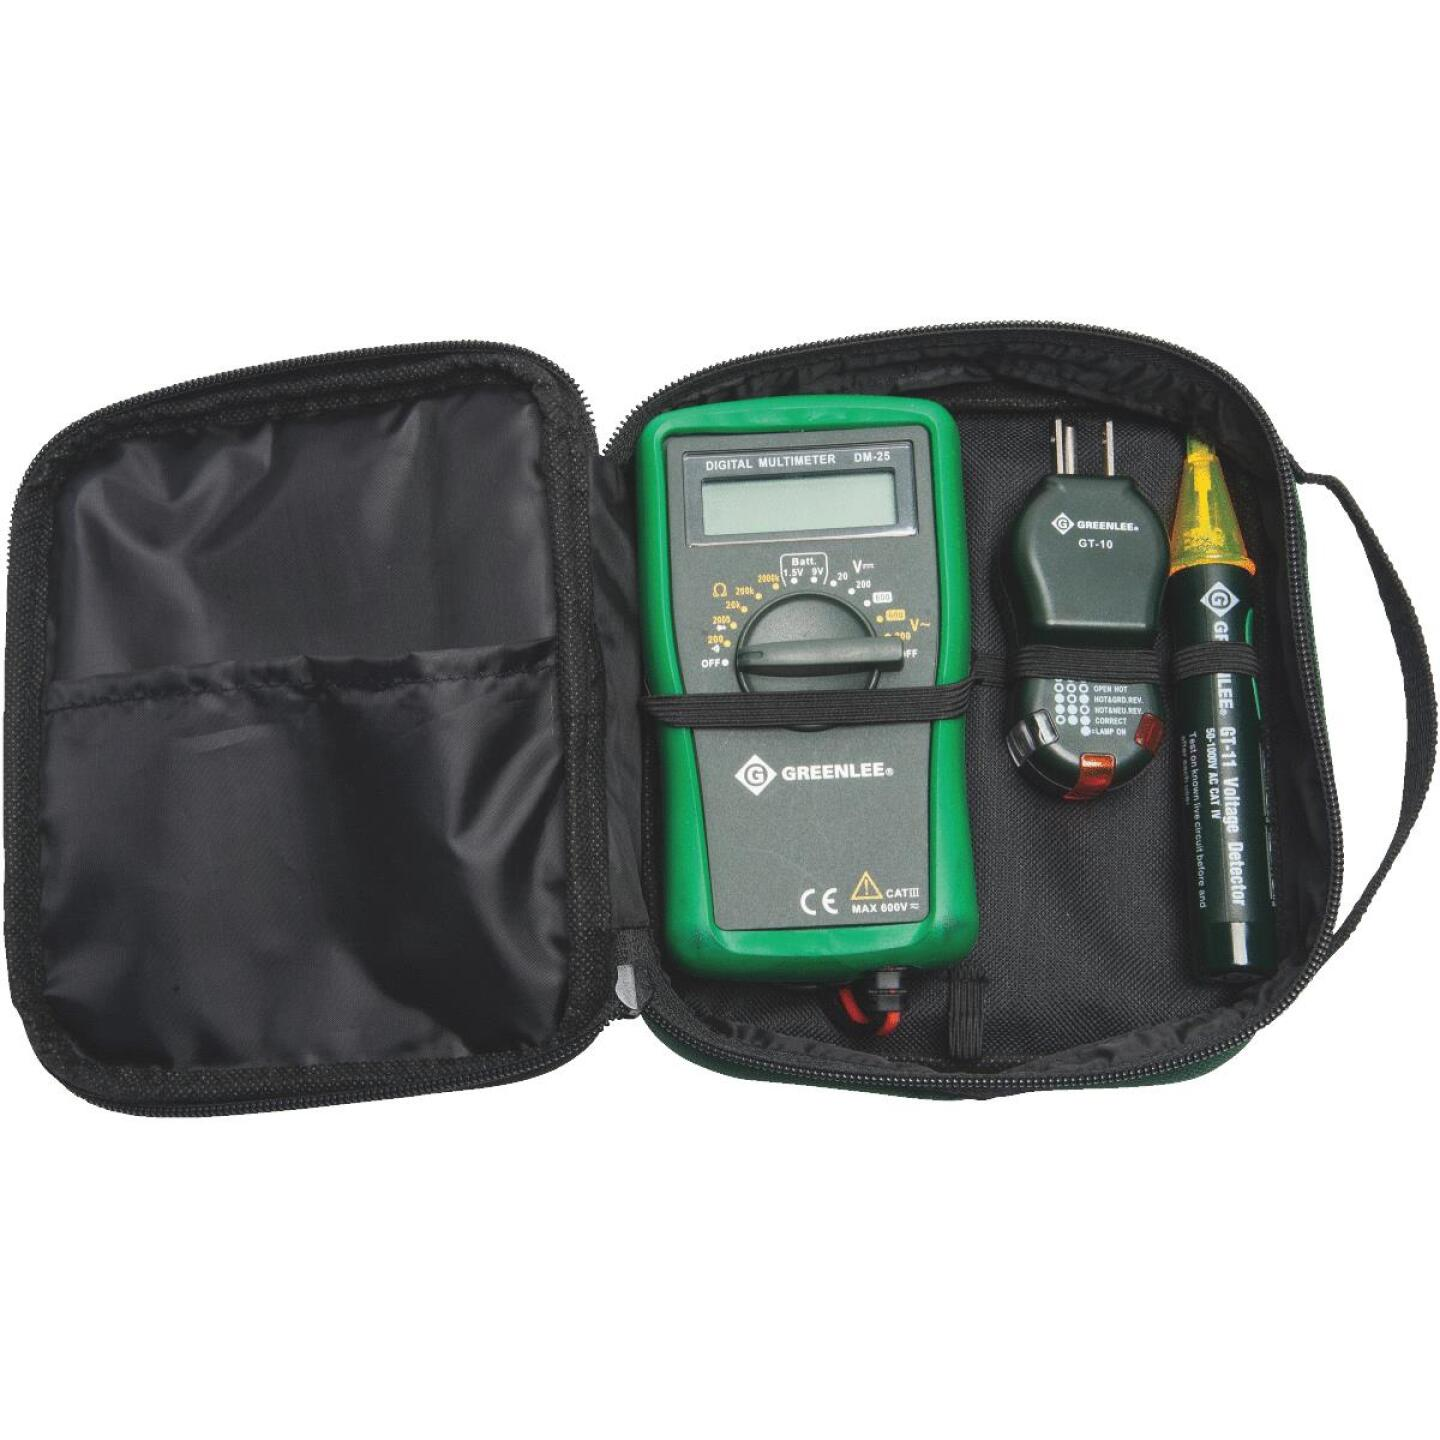 Greenlee 3-Piece Multimeter Test Kit with Case Image 1